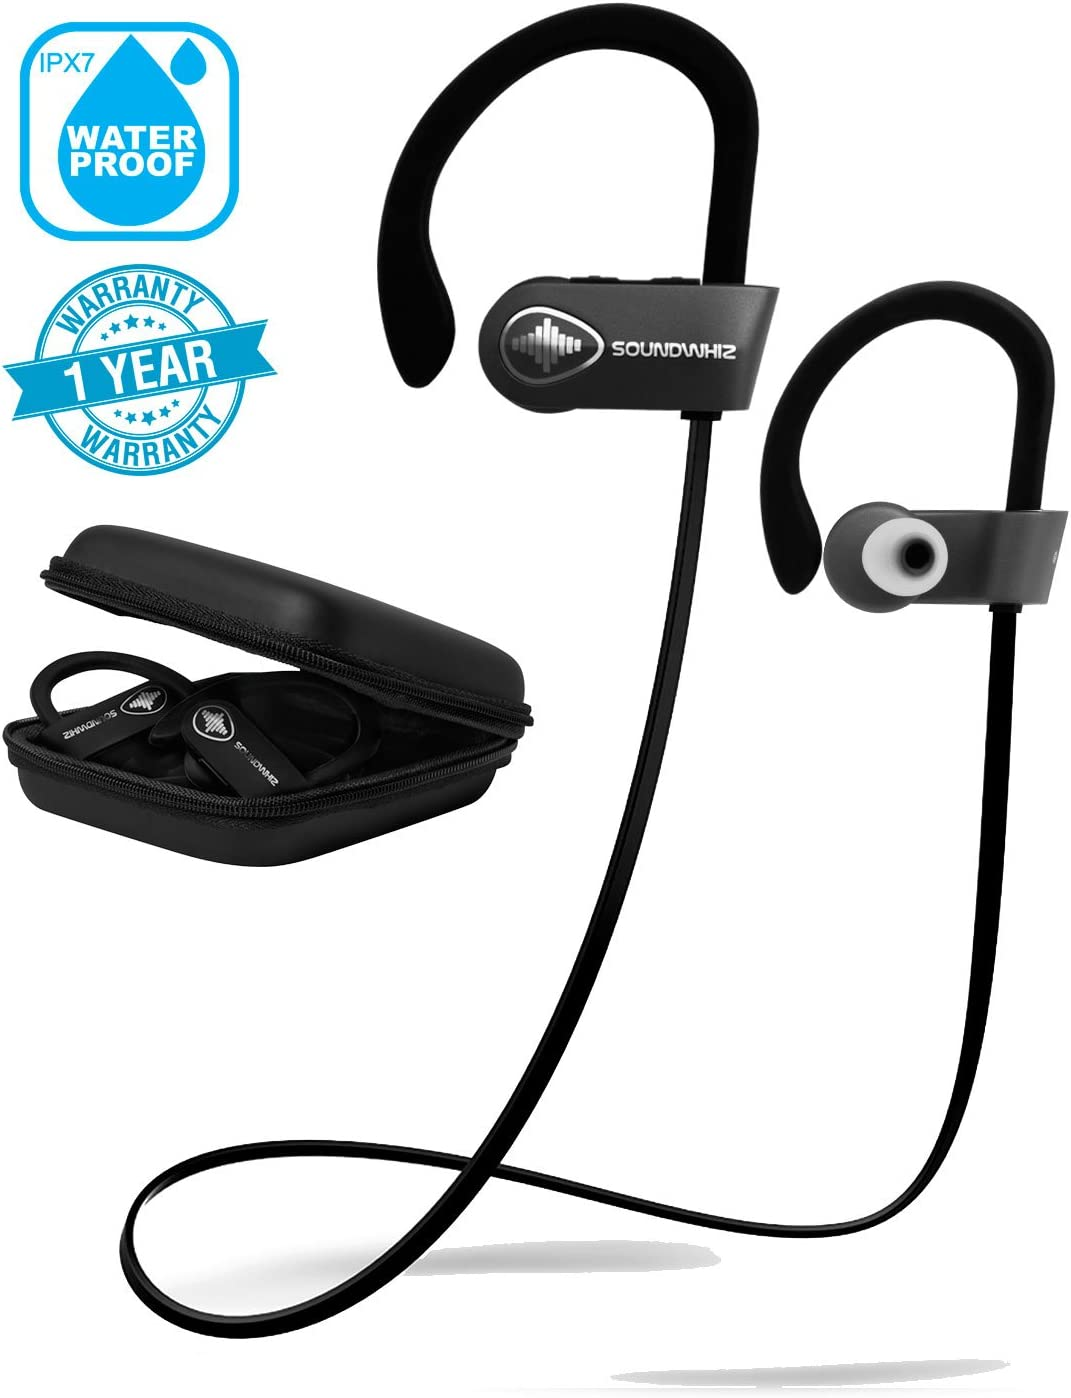 Wireless Earbuds in Ear Headphones. SoundWhiz Turbo Sweatproof Workout Earbuds with Microphone. Best Bluetooth Earbuds for Running, Sports, Gym, Exercise. Connects to Fitness Trackers Smart Watches